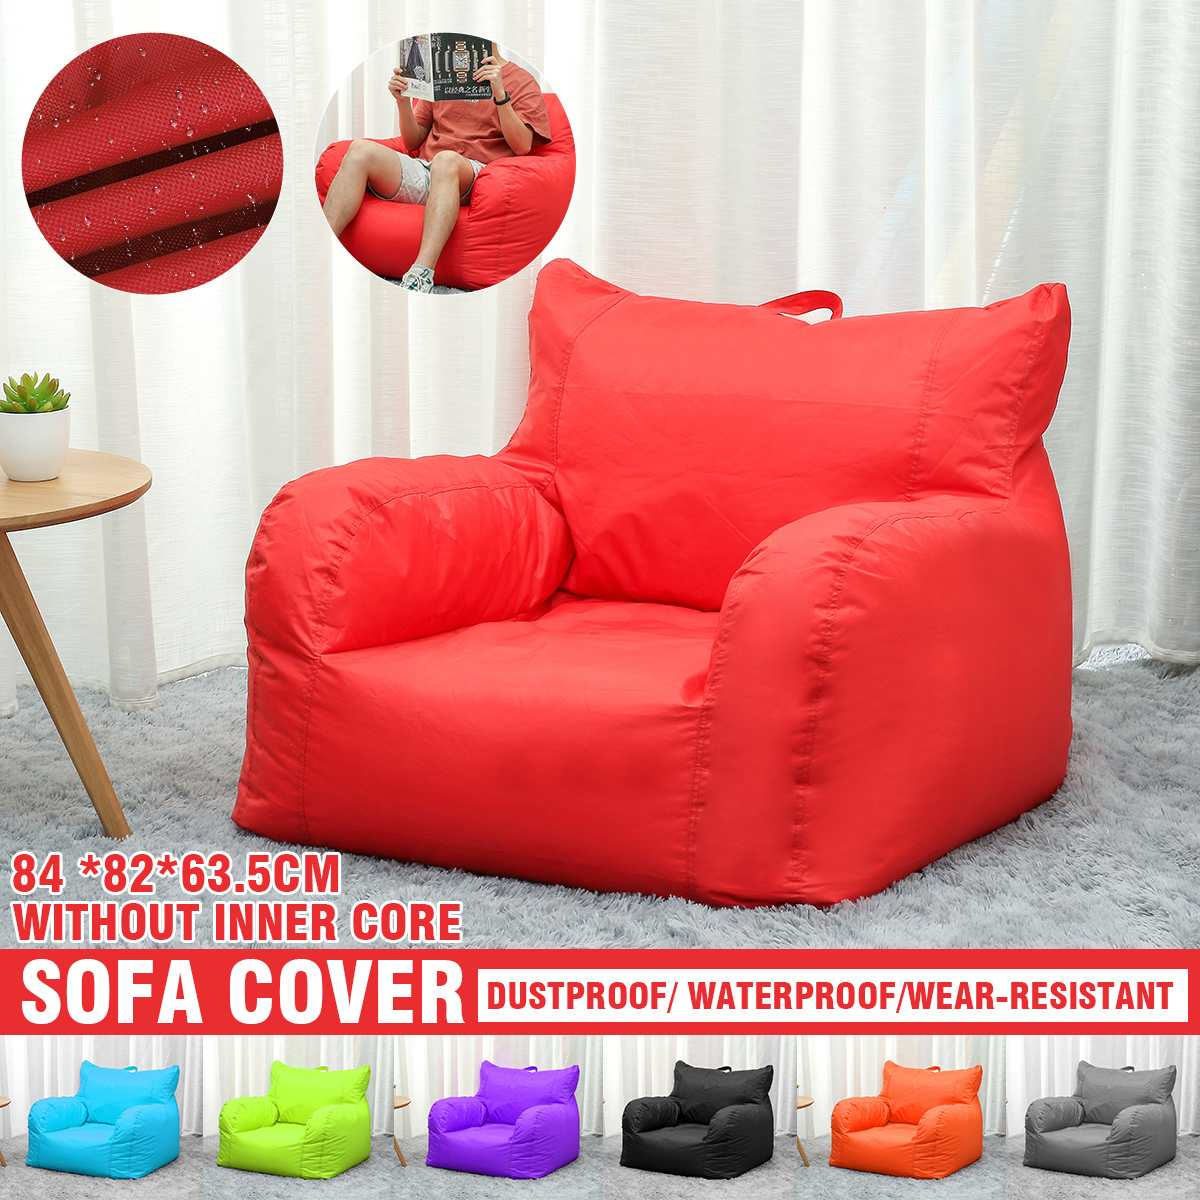 Comfortable Lazy Chairs Sofas Cover without Filler Waterproof 420D Oxford Cloth Lounger Seat Bean Bag Pouf Puff Couch Tatami